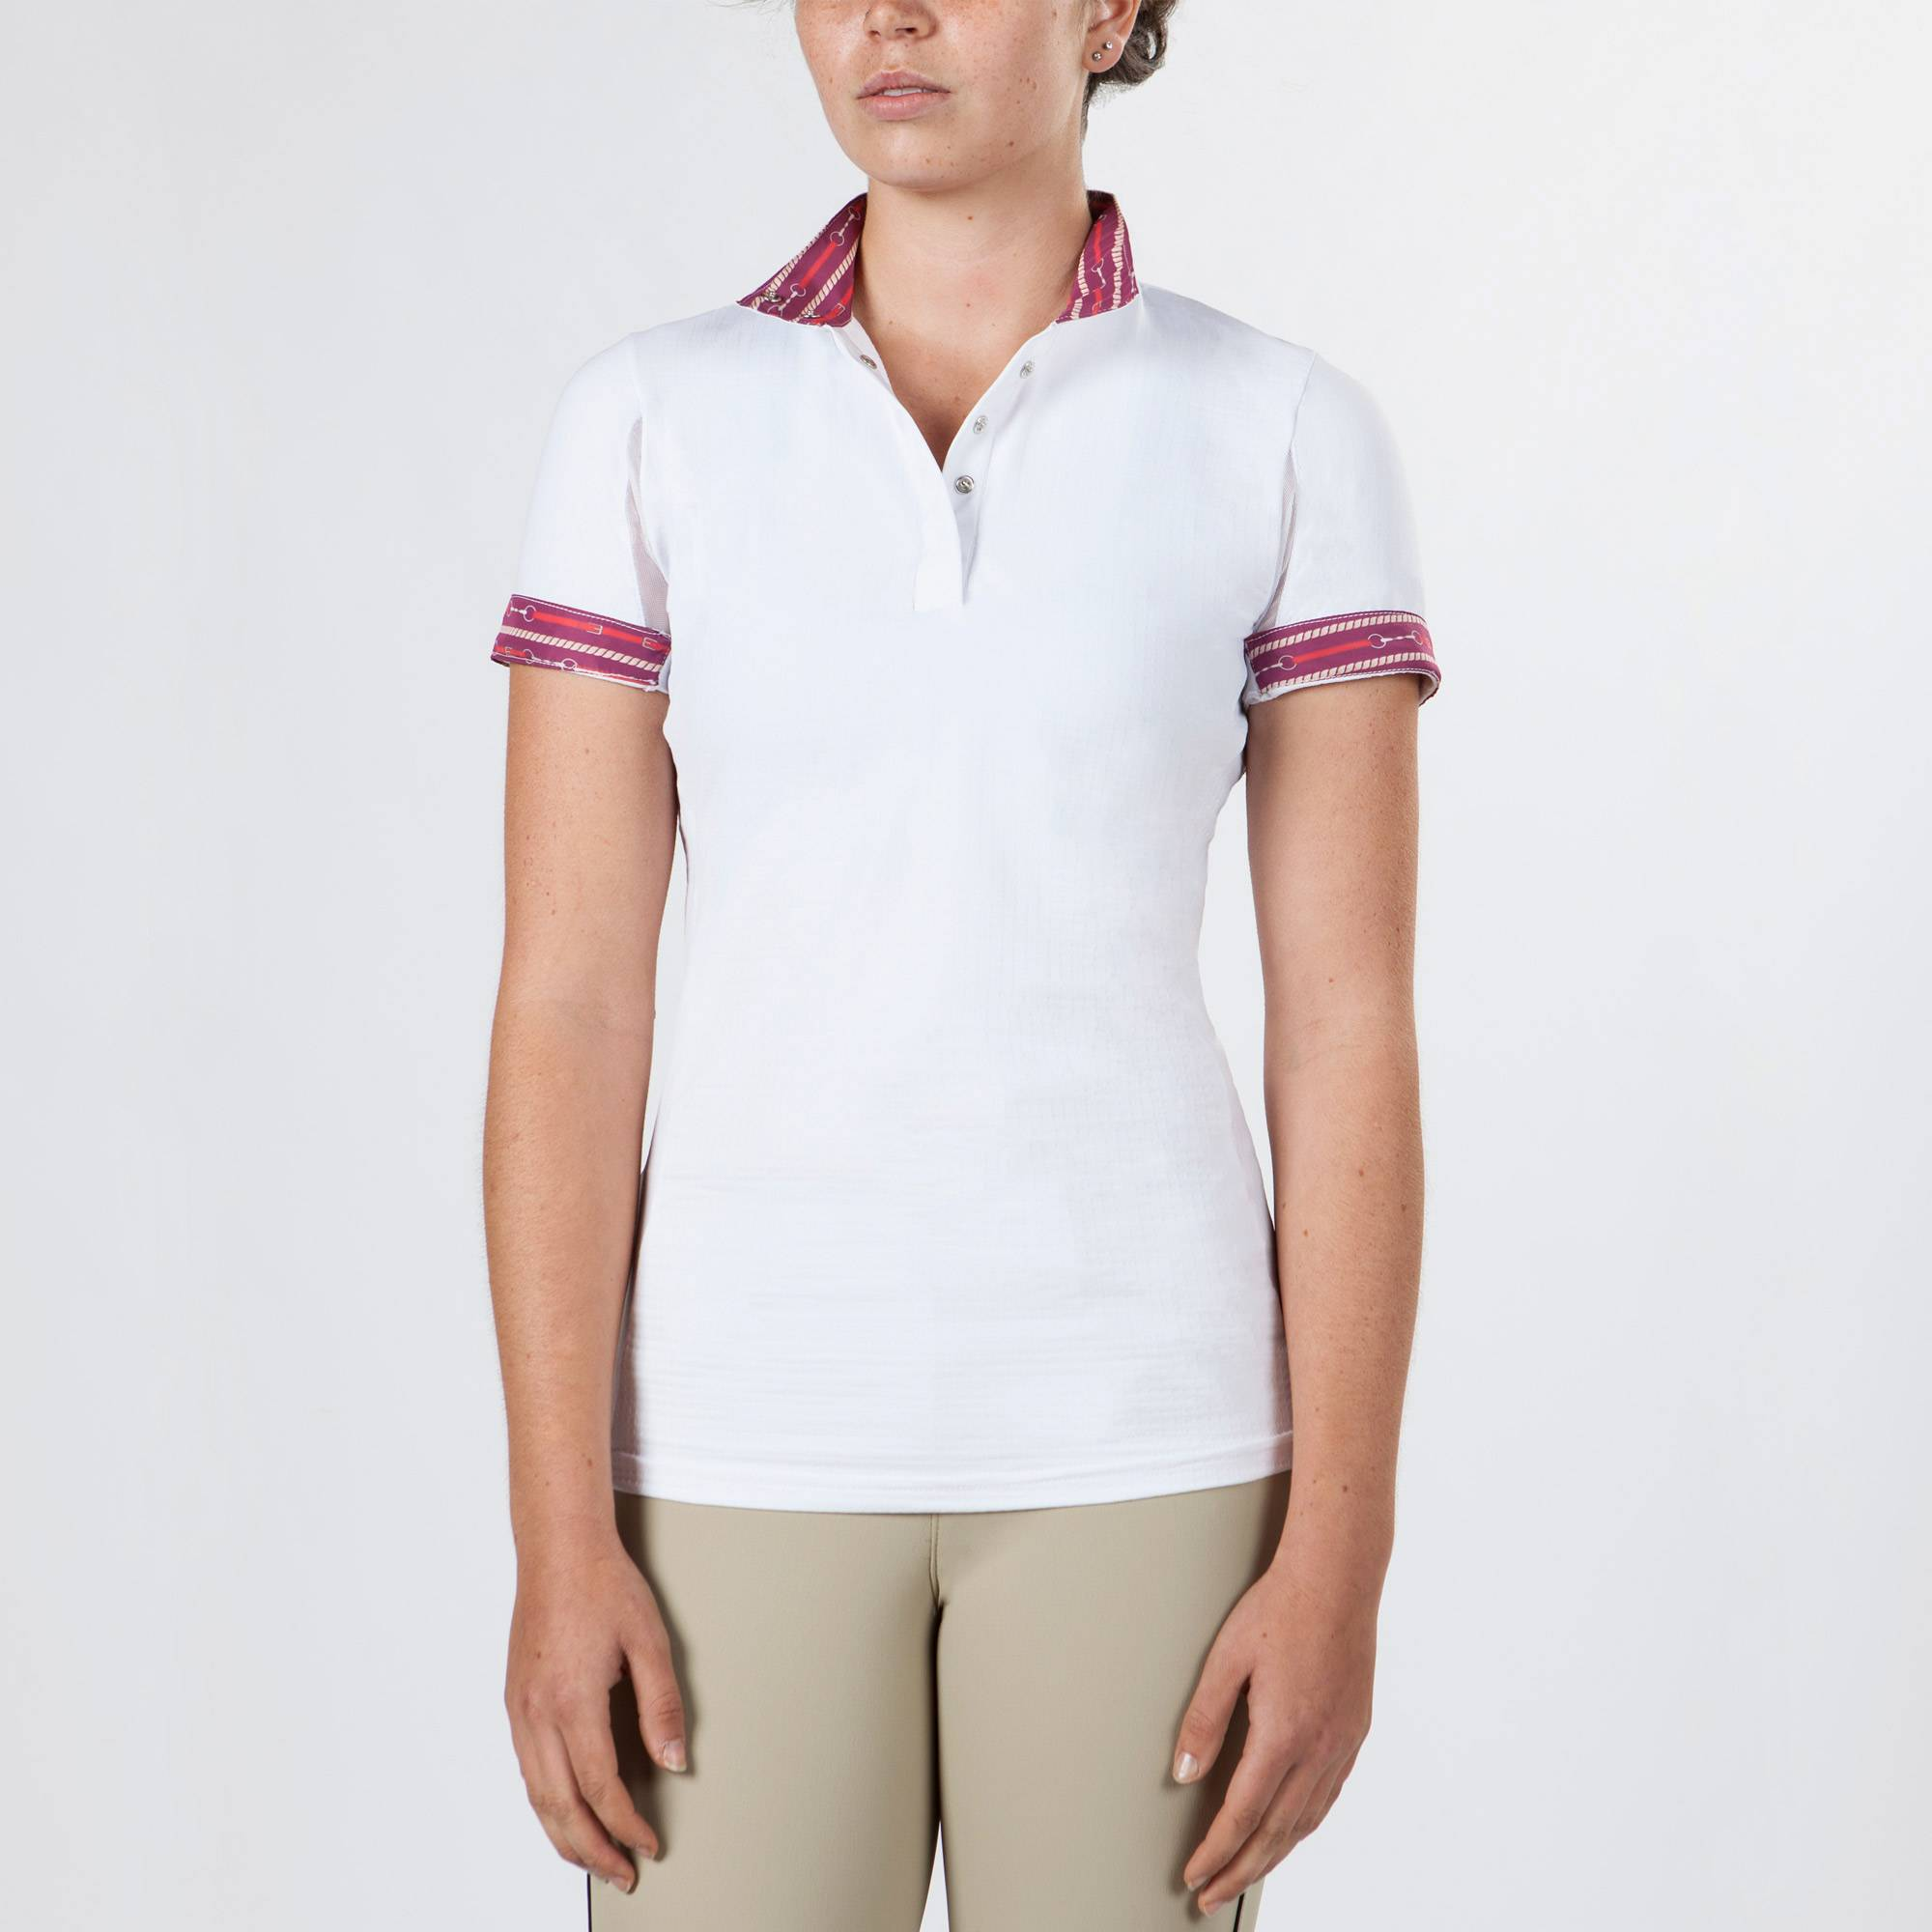 Irideon Cool Down IceFil Short Sleeve Show Shirt - Ladies